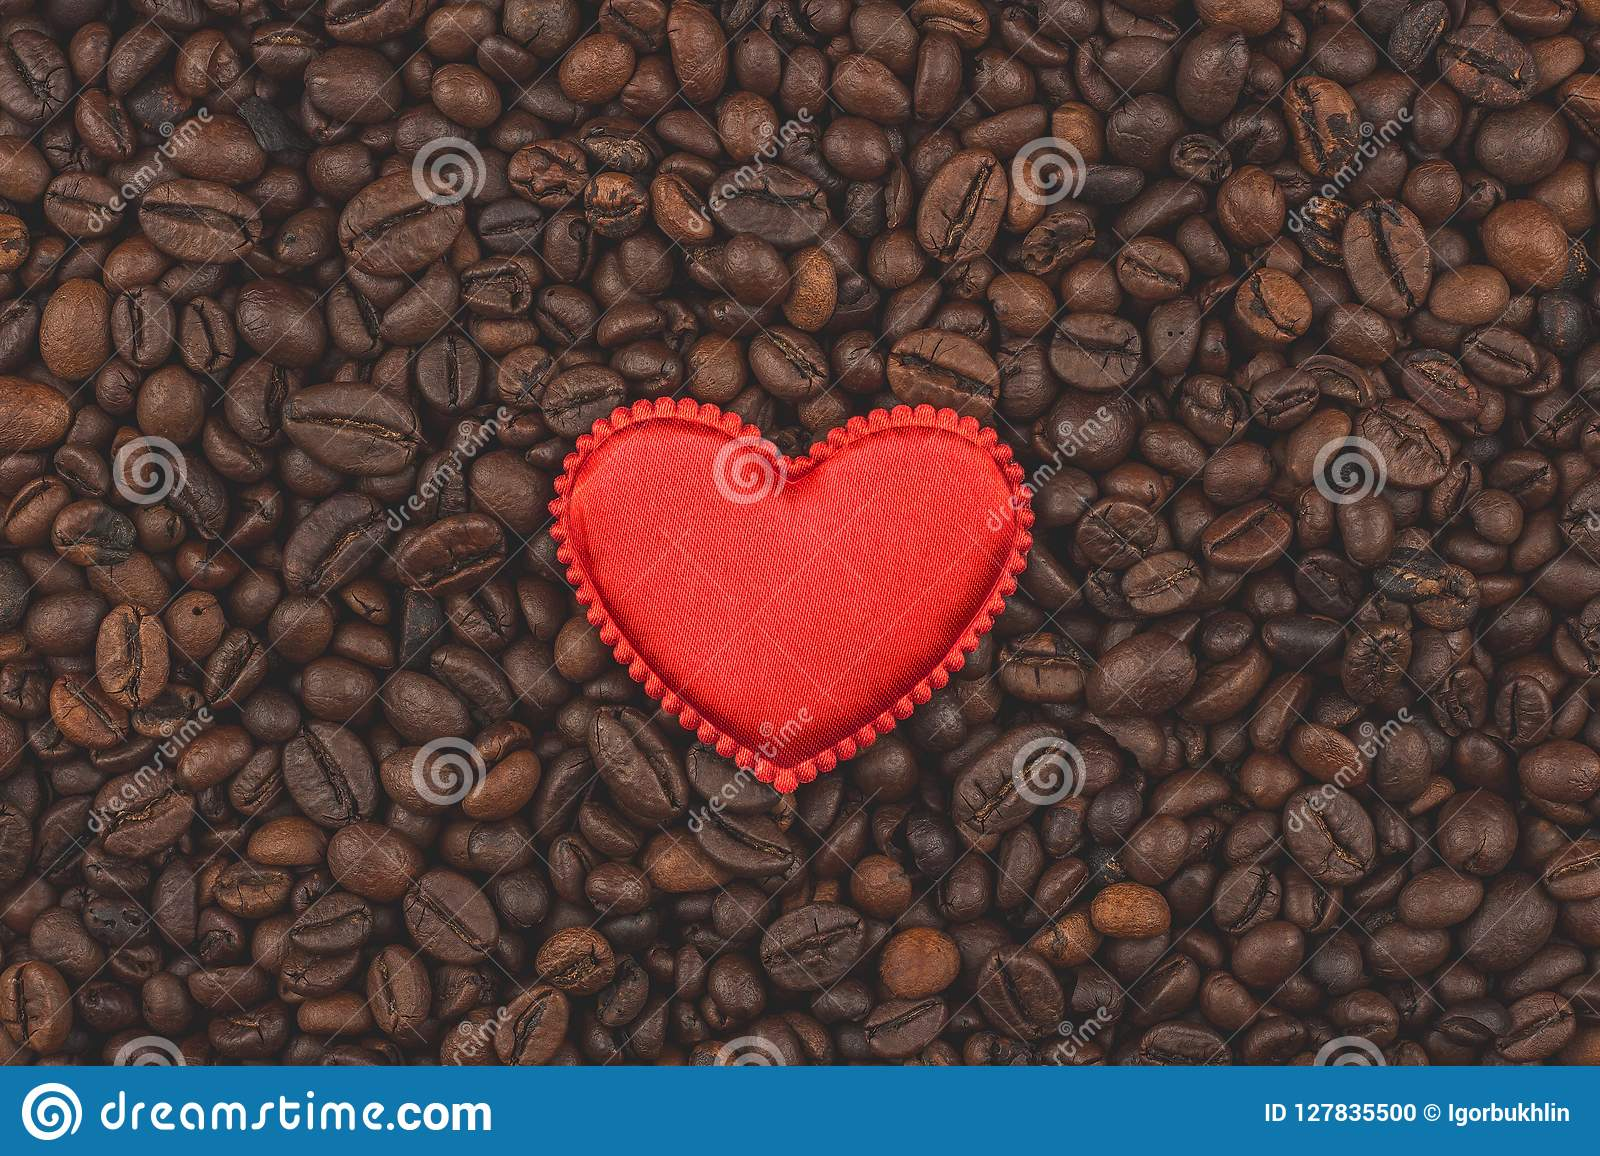 Roasted Coffee Beans I Love Coffee Background Close Up View